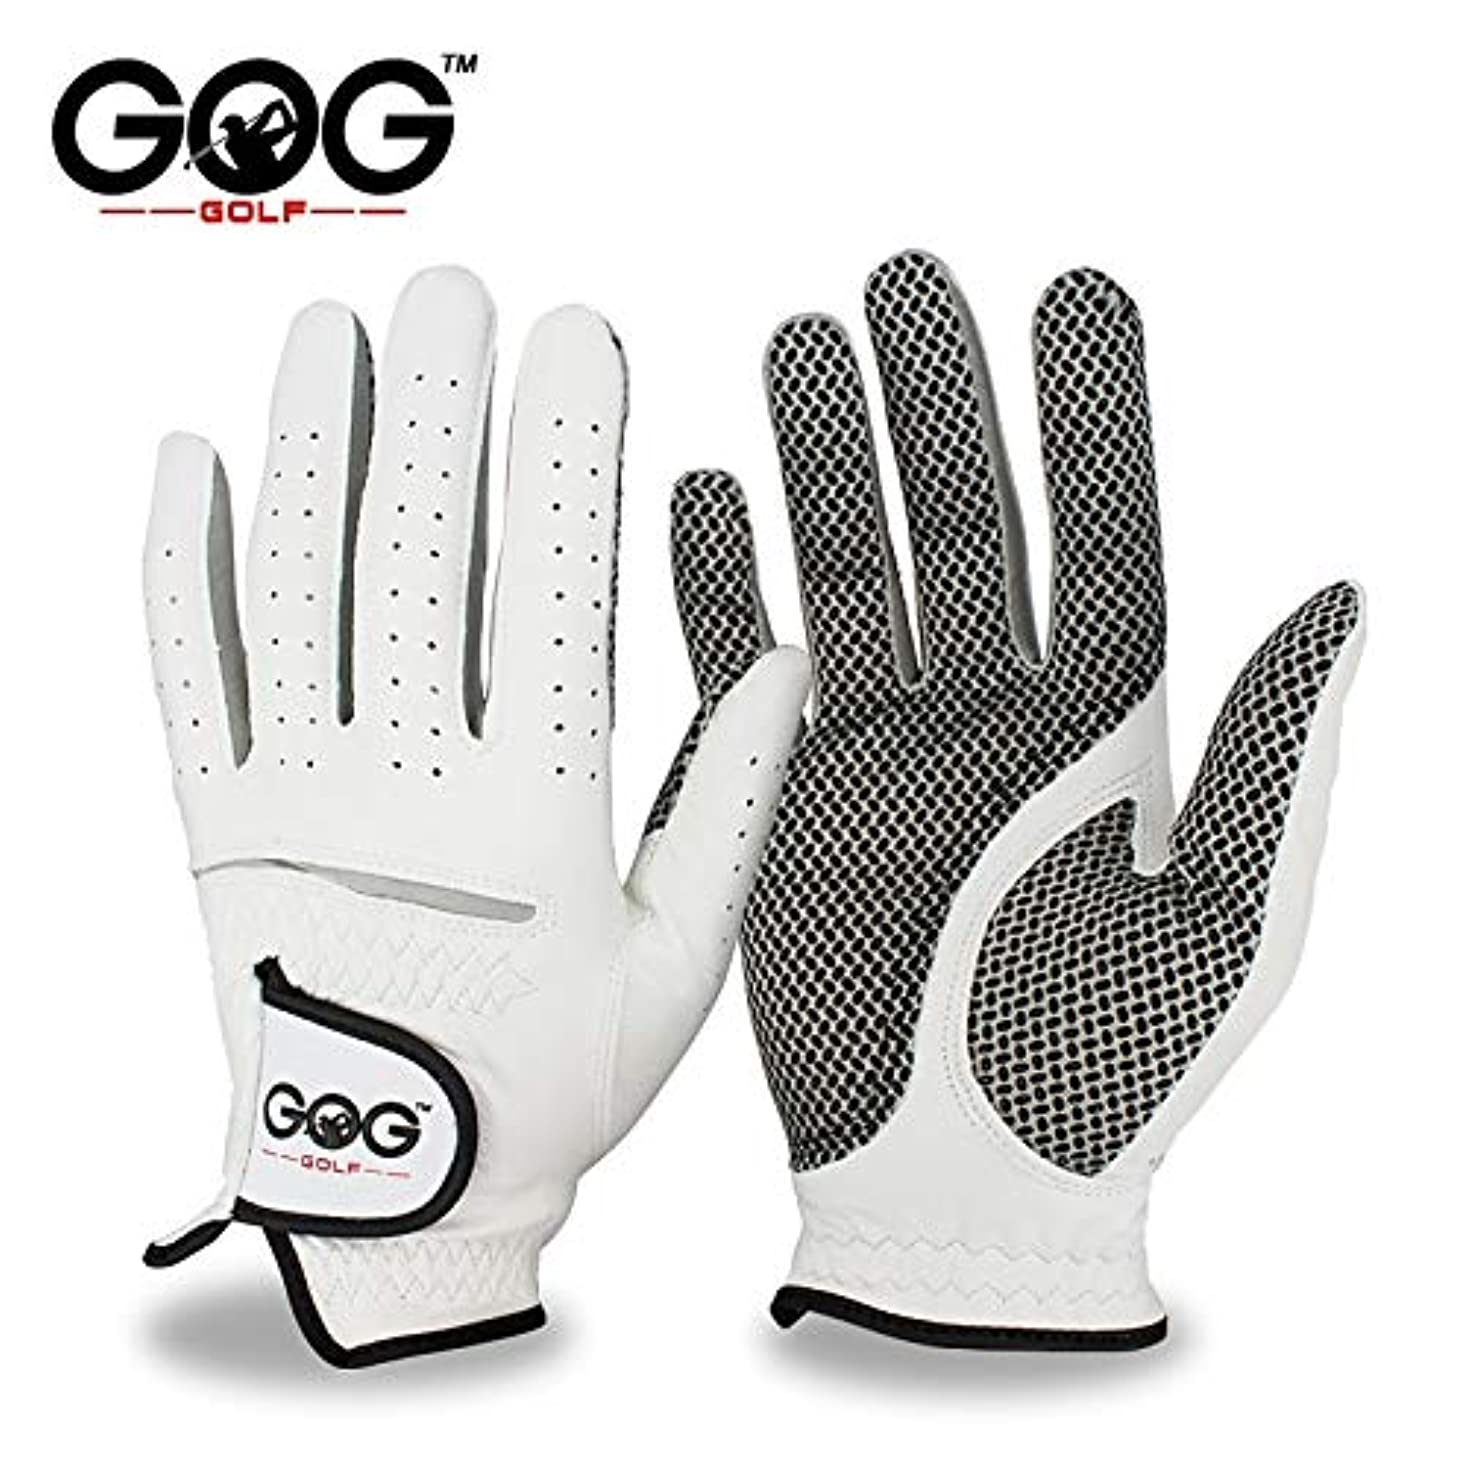 Golf Gloves Genuine Leather Golf Gloves Men's Left Right Hand Soft Breathable Pure Sheepskin Golf Gloves Golf Accessories | by NAHASU lackz653766